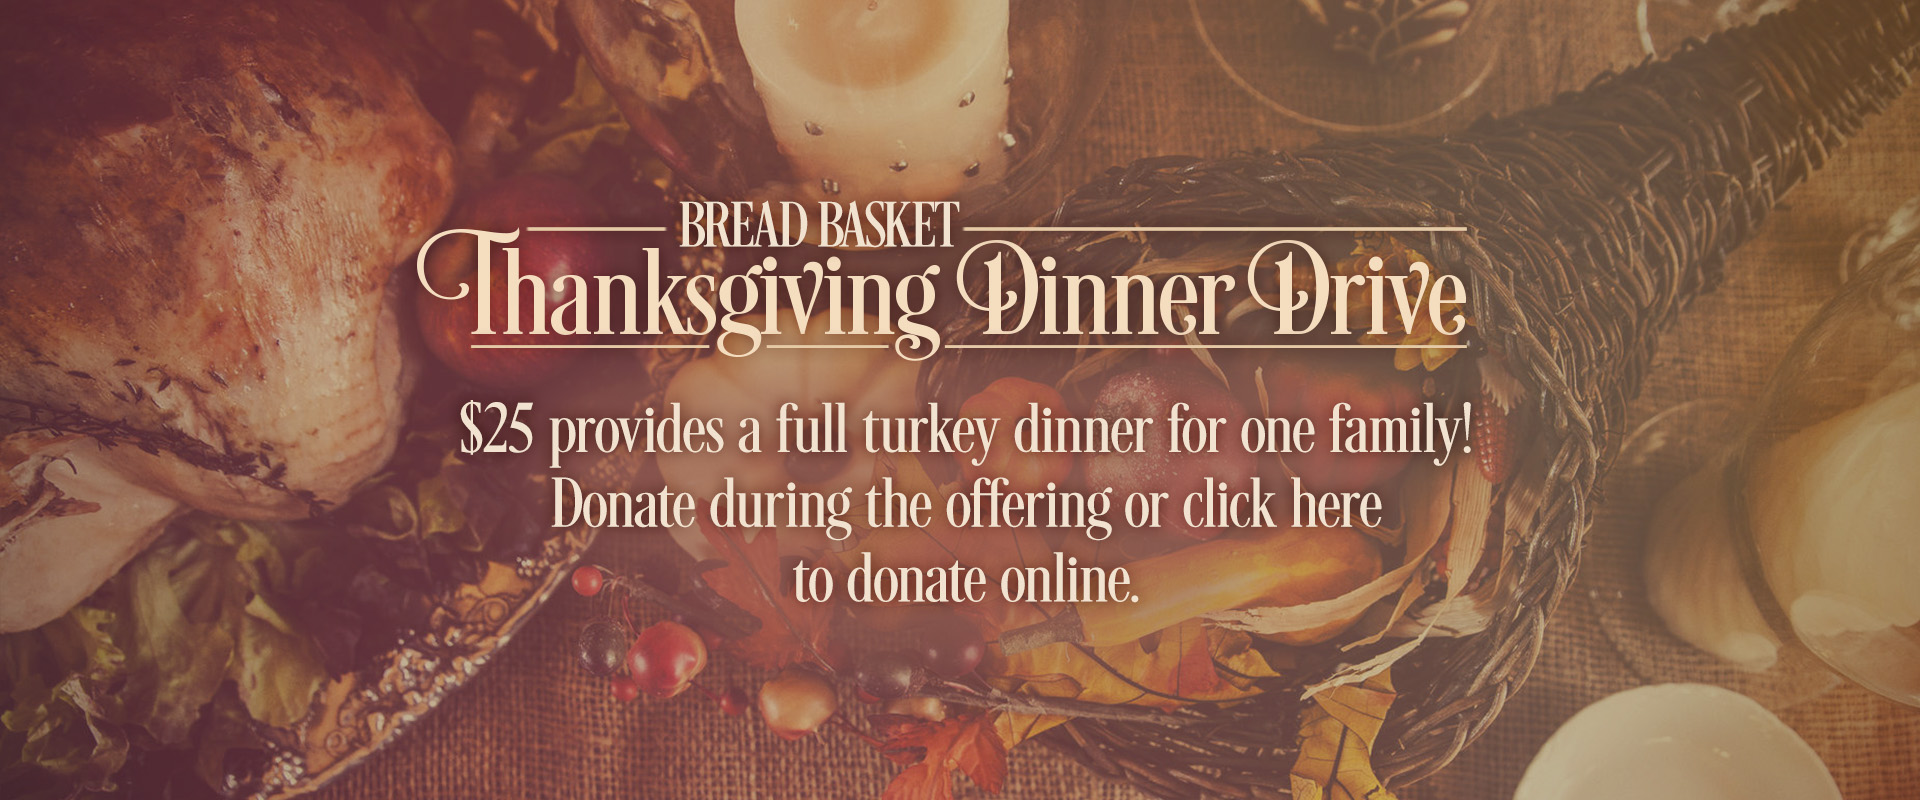 thanksgiving dinner drive